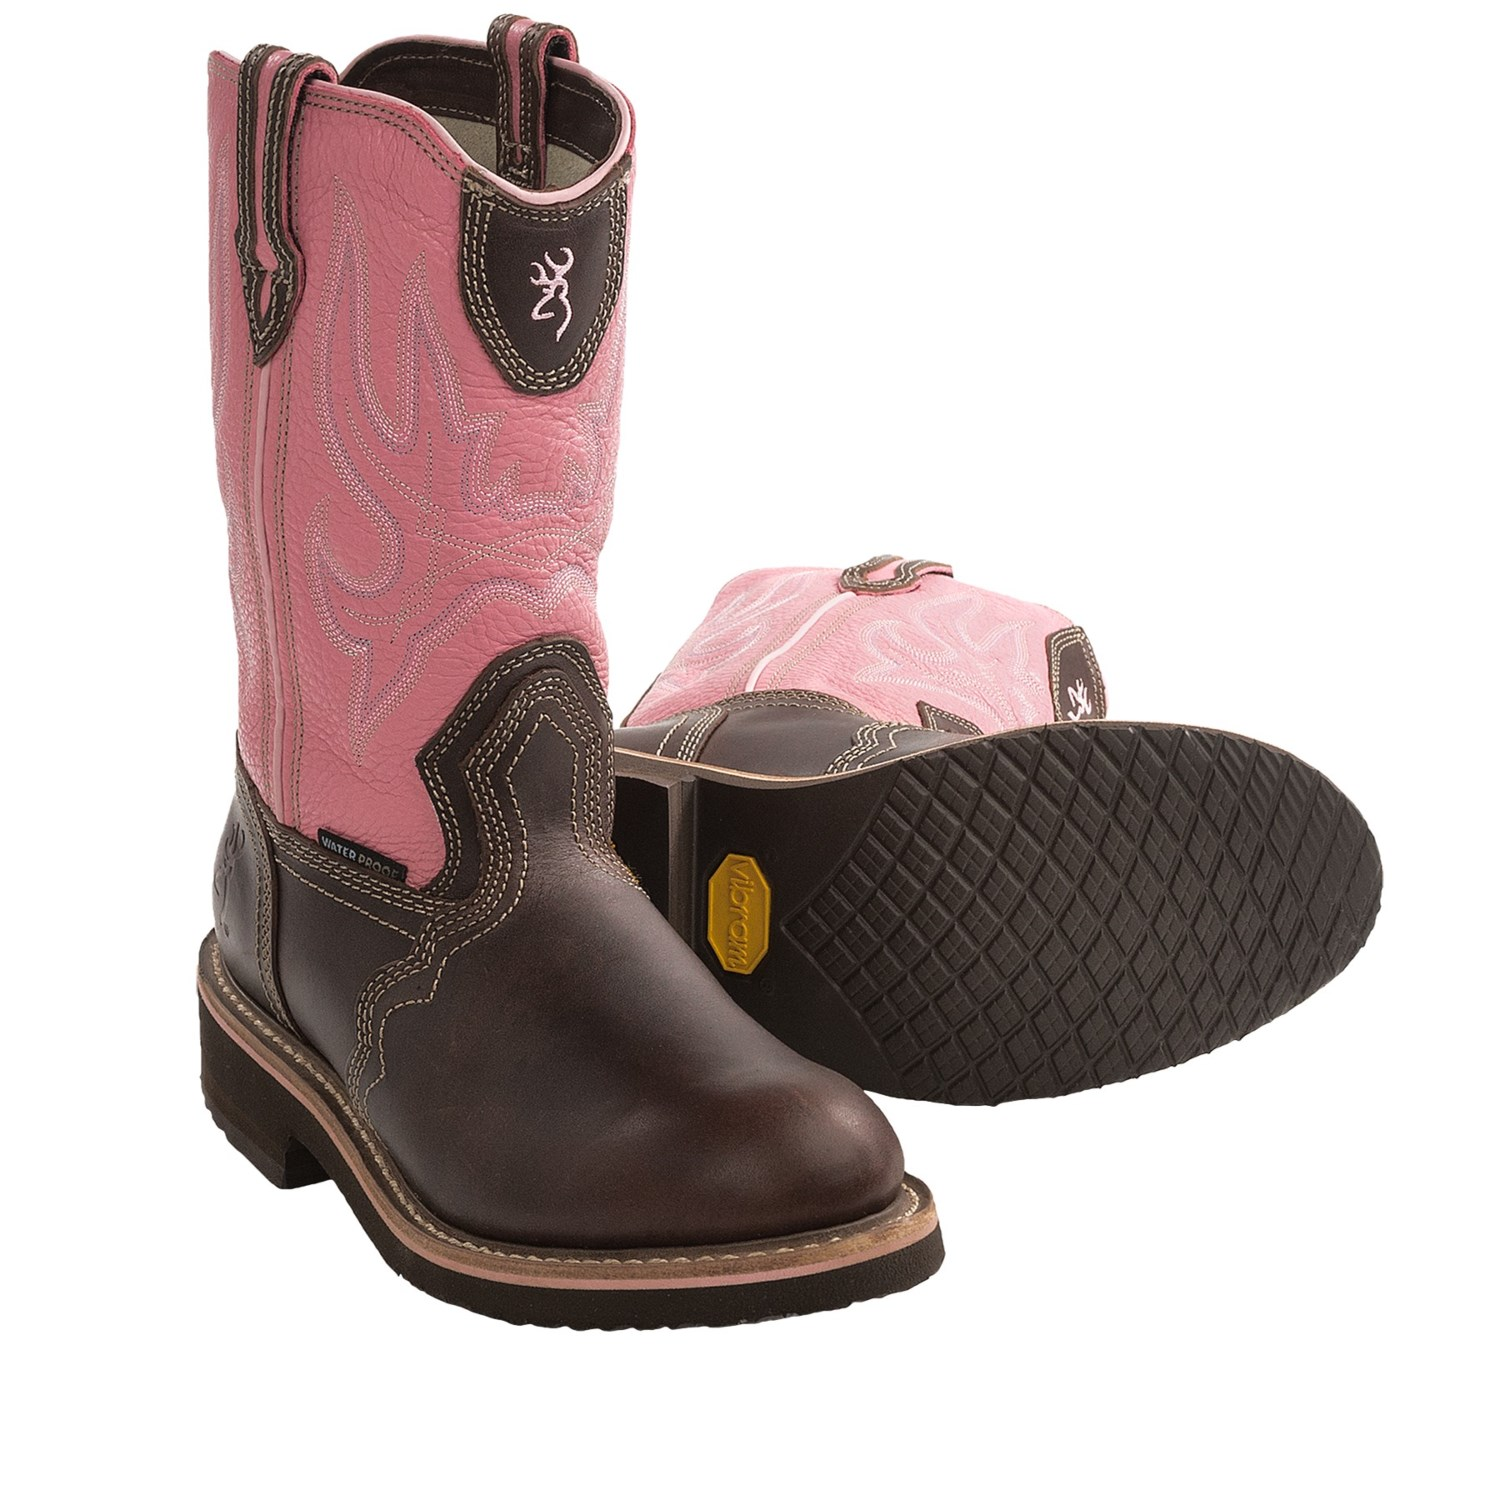 browning fancy stitch wellington boots for 7129x